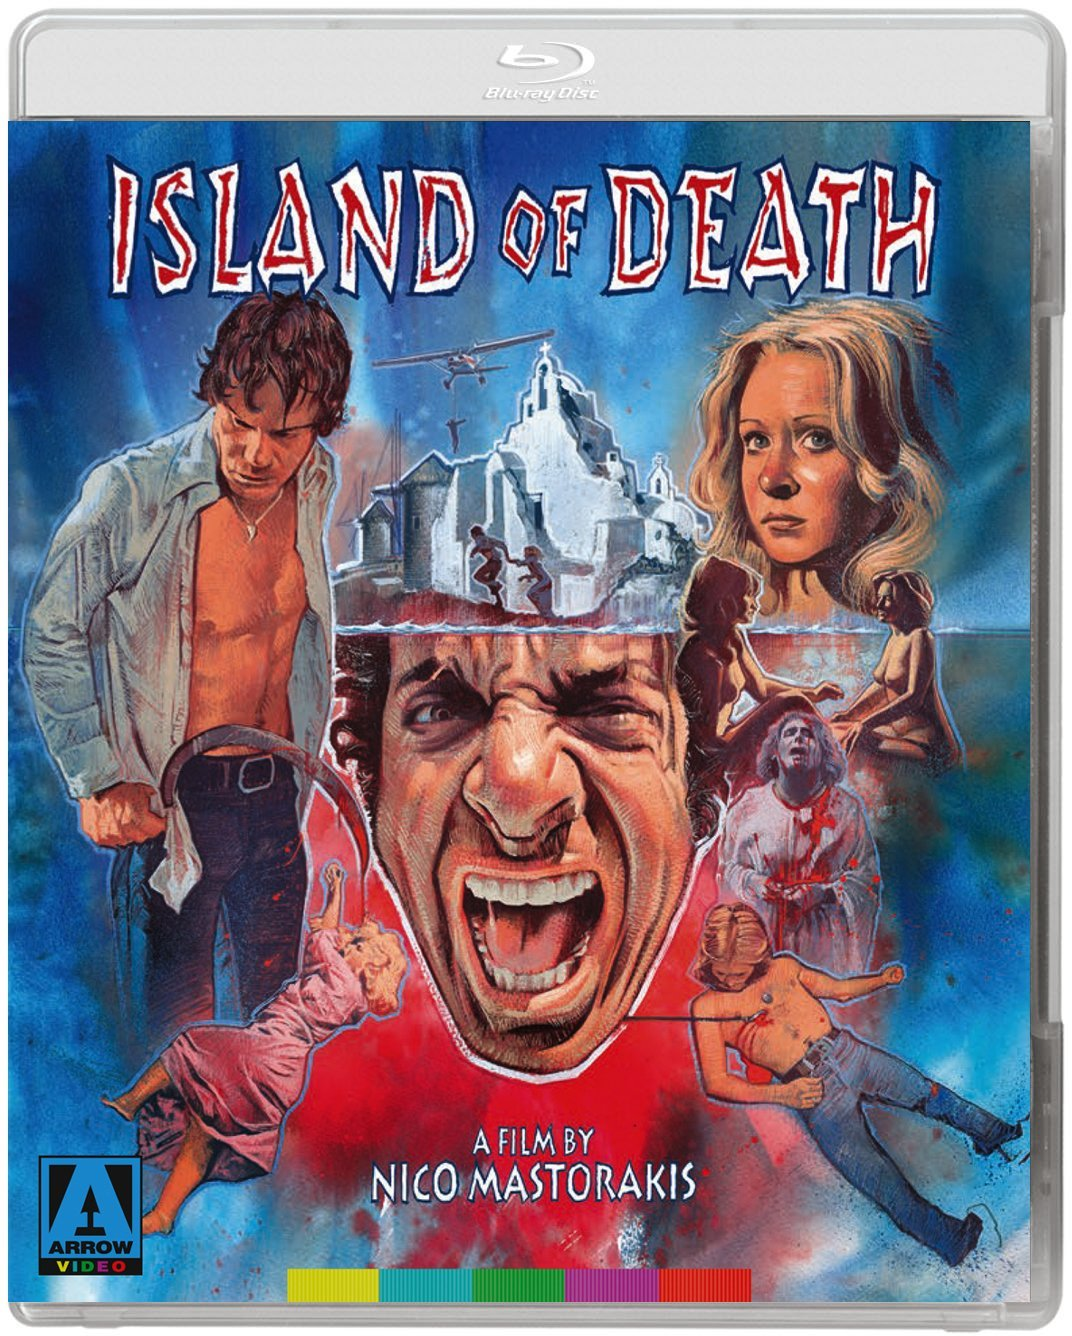 Island of Death Blu-Ray Cover